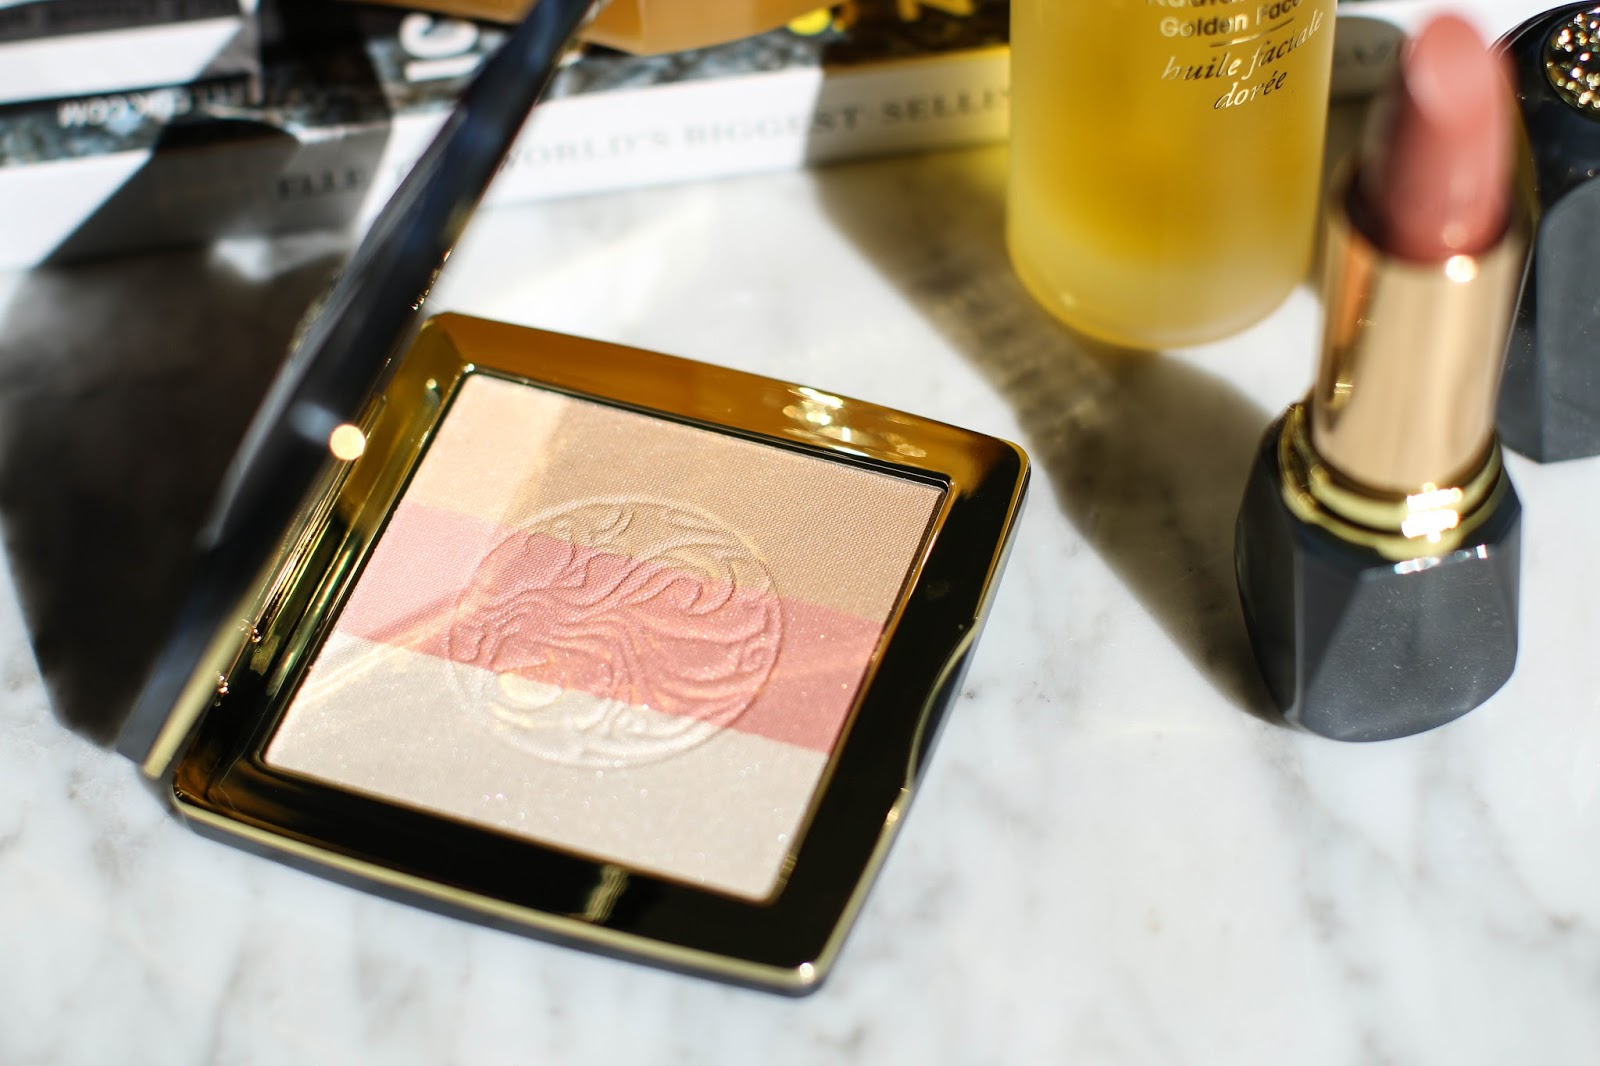 Review of the new Oribe skincare and makeup line.